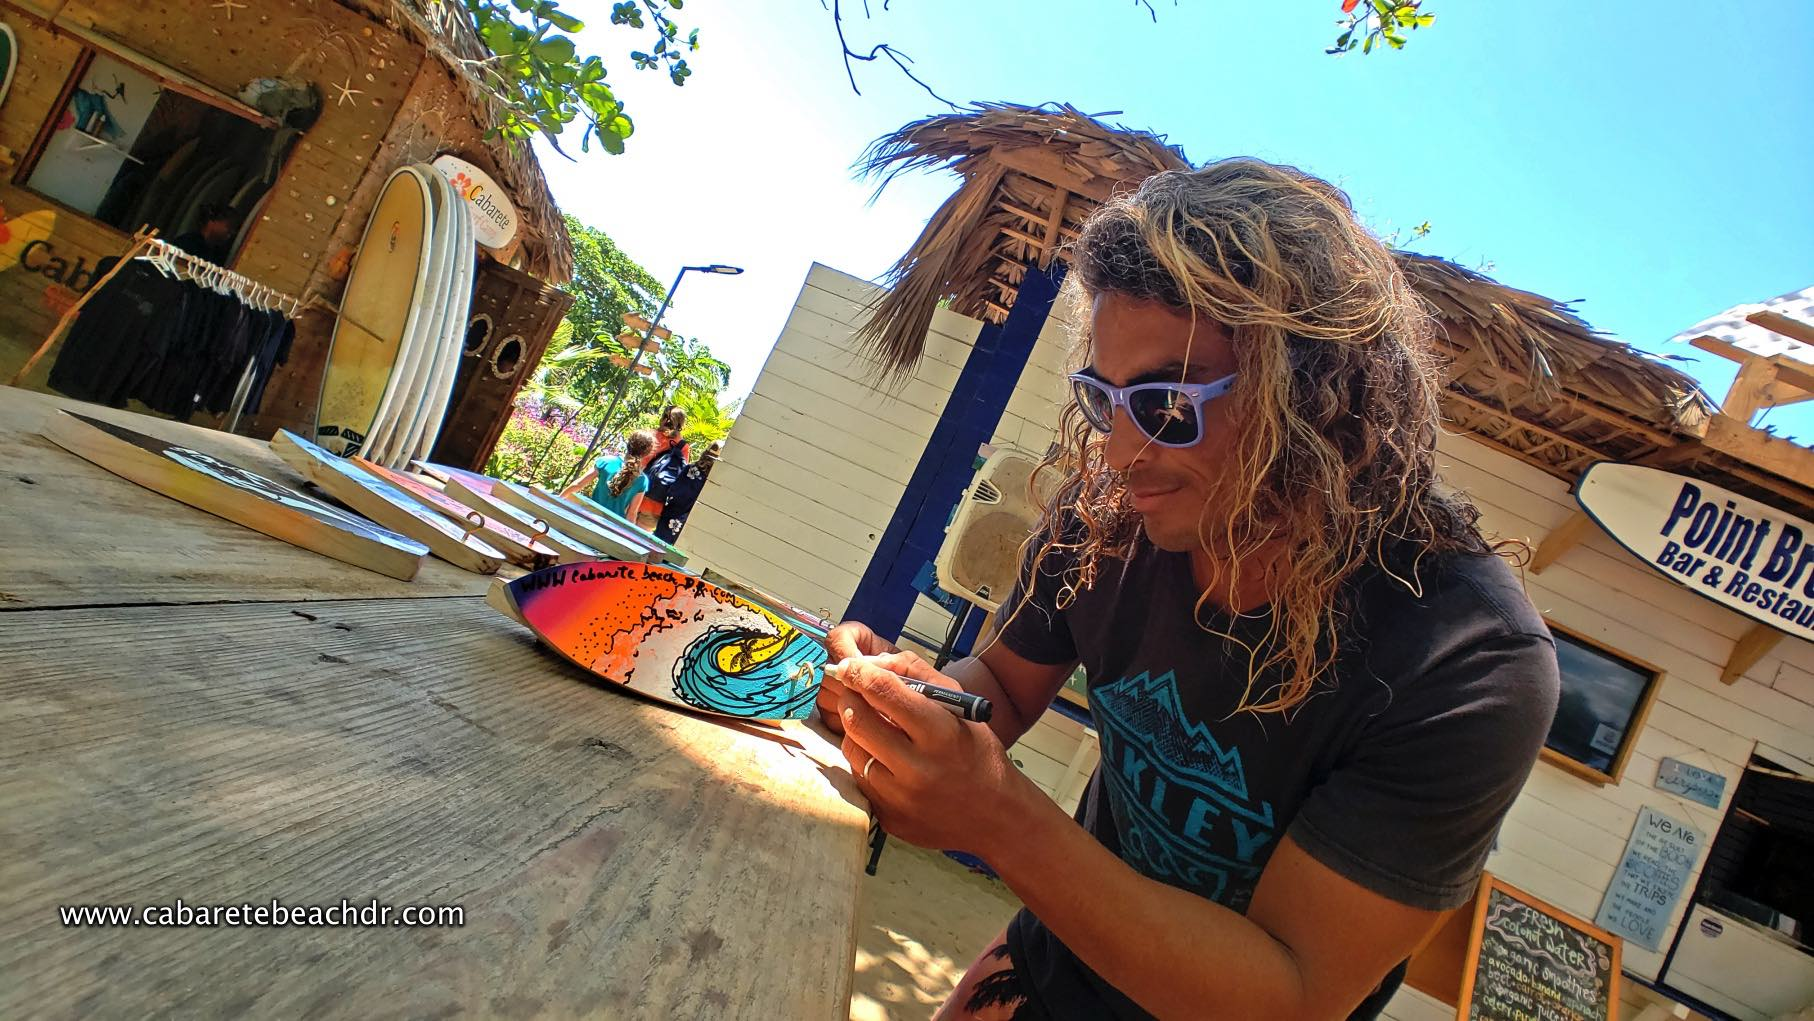 A handcraft expert painting souvenirs in the beach